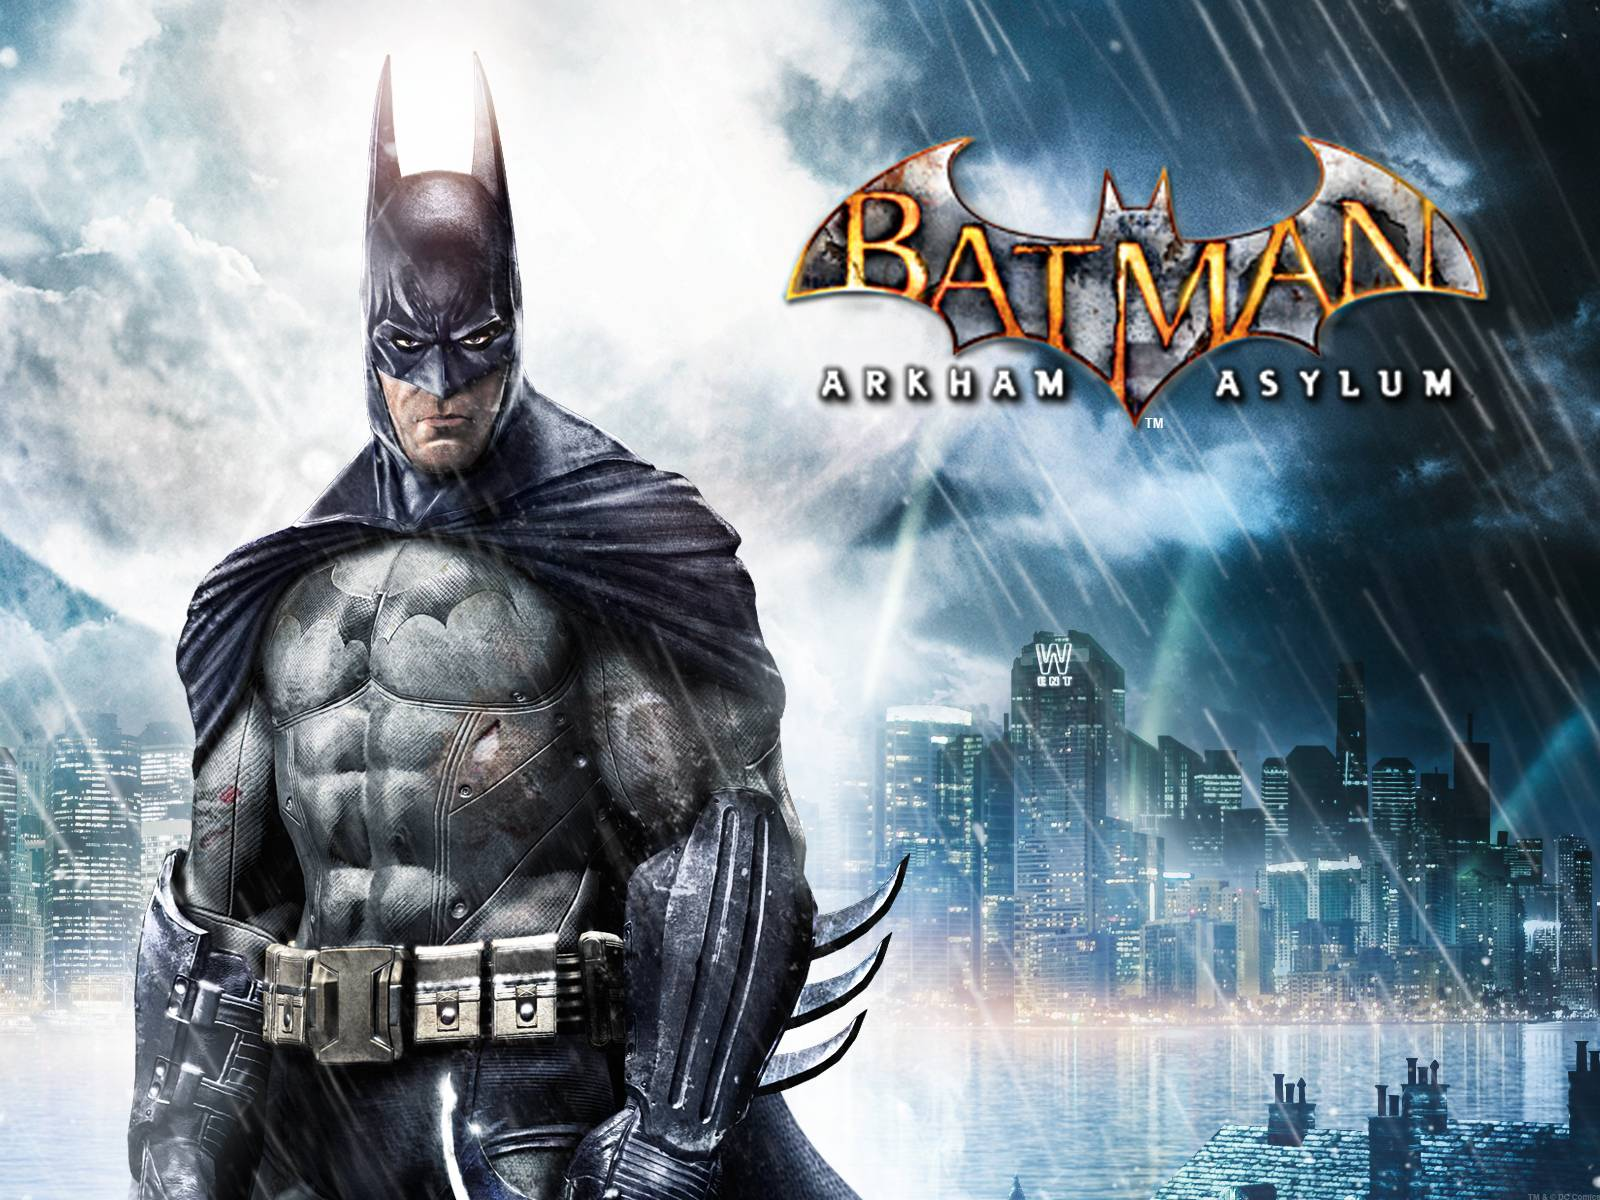 Batman Arkham Asylum Wallpapers For Free Android